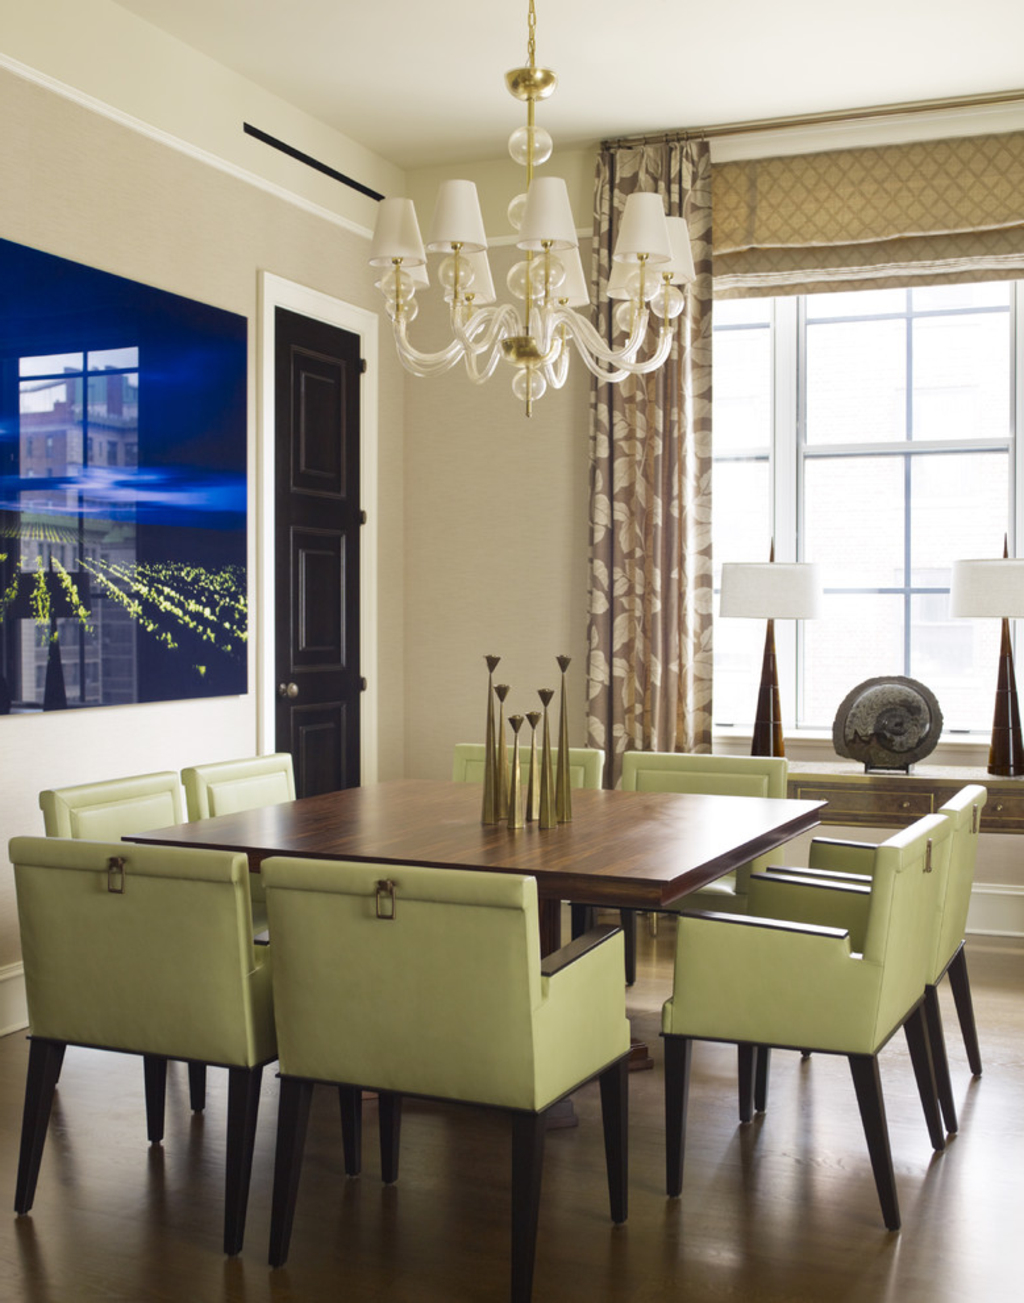 Contemporary Mosaic Dining Room (Image 1 of 6)